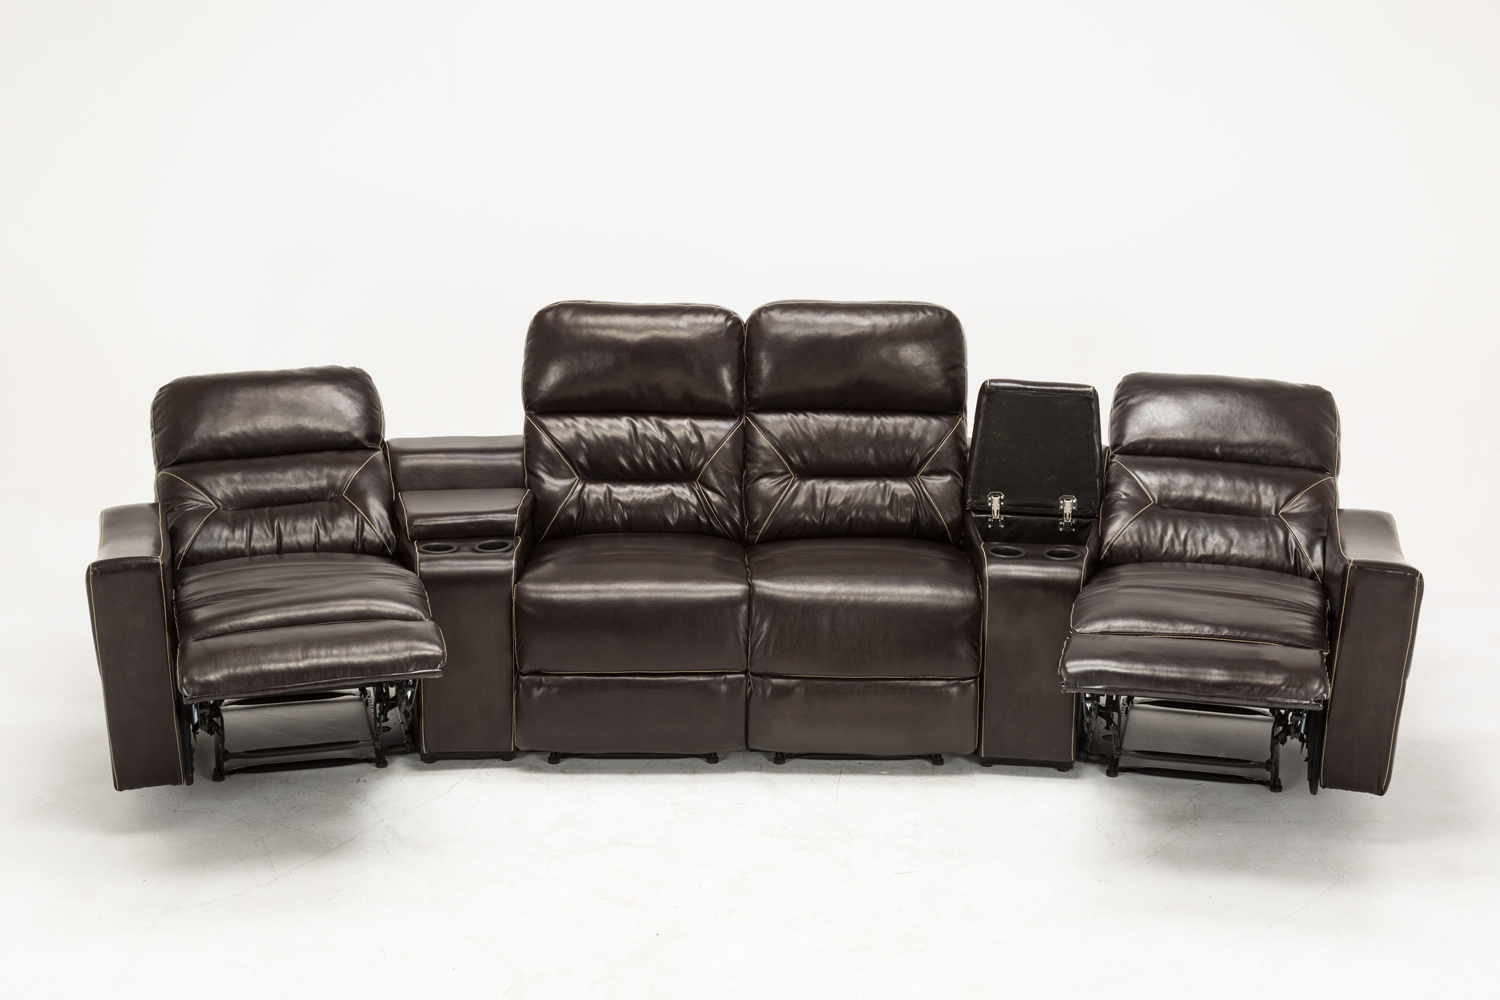 Mcombo brown vibrating 4pc home theater recliner media sofa set cup holder 7096 ebay Loveseat theater seating